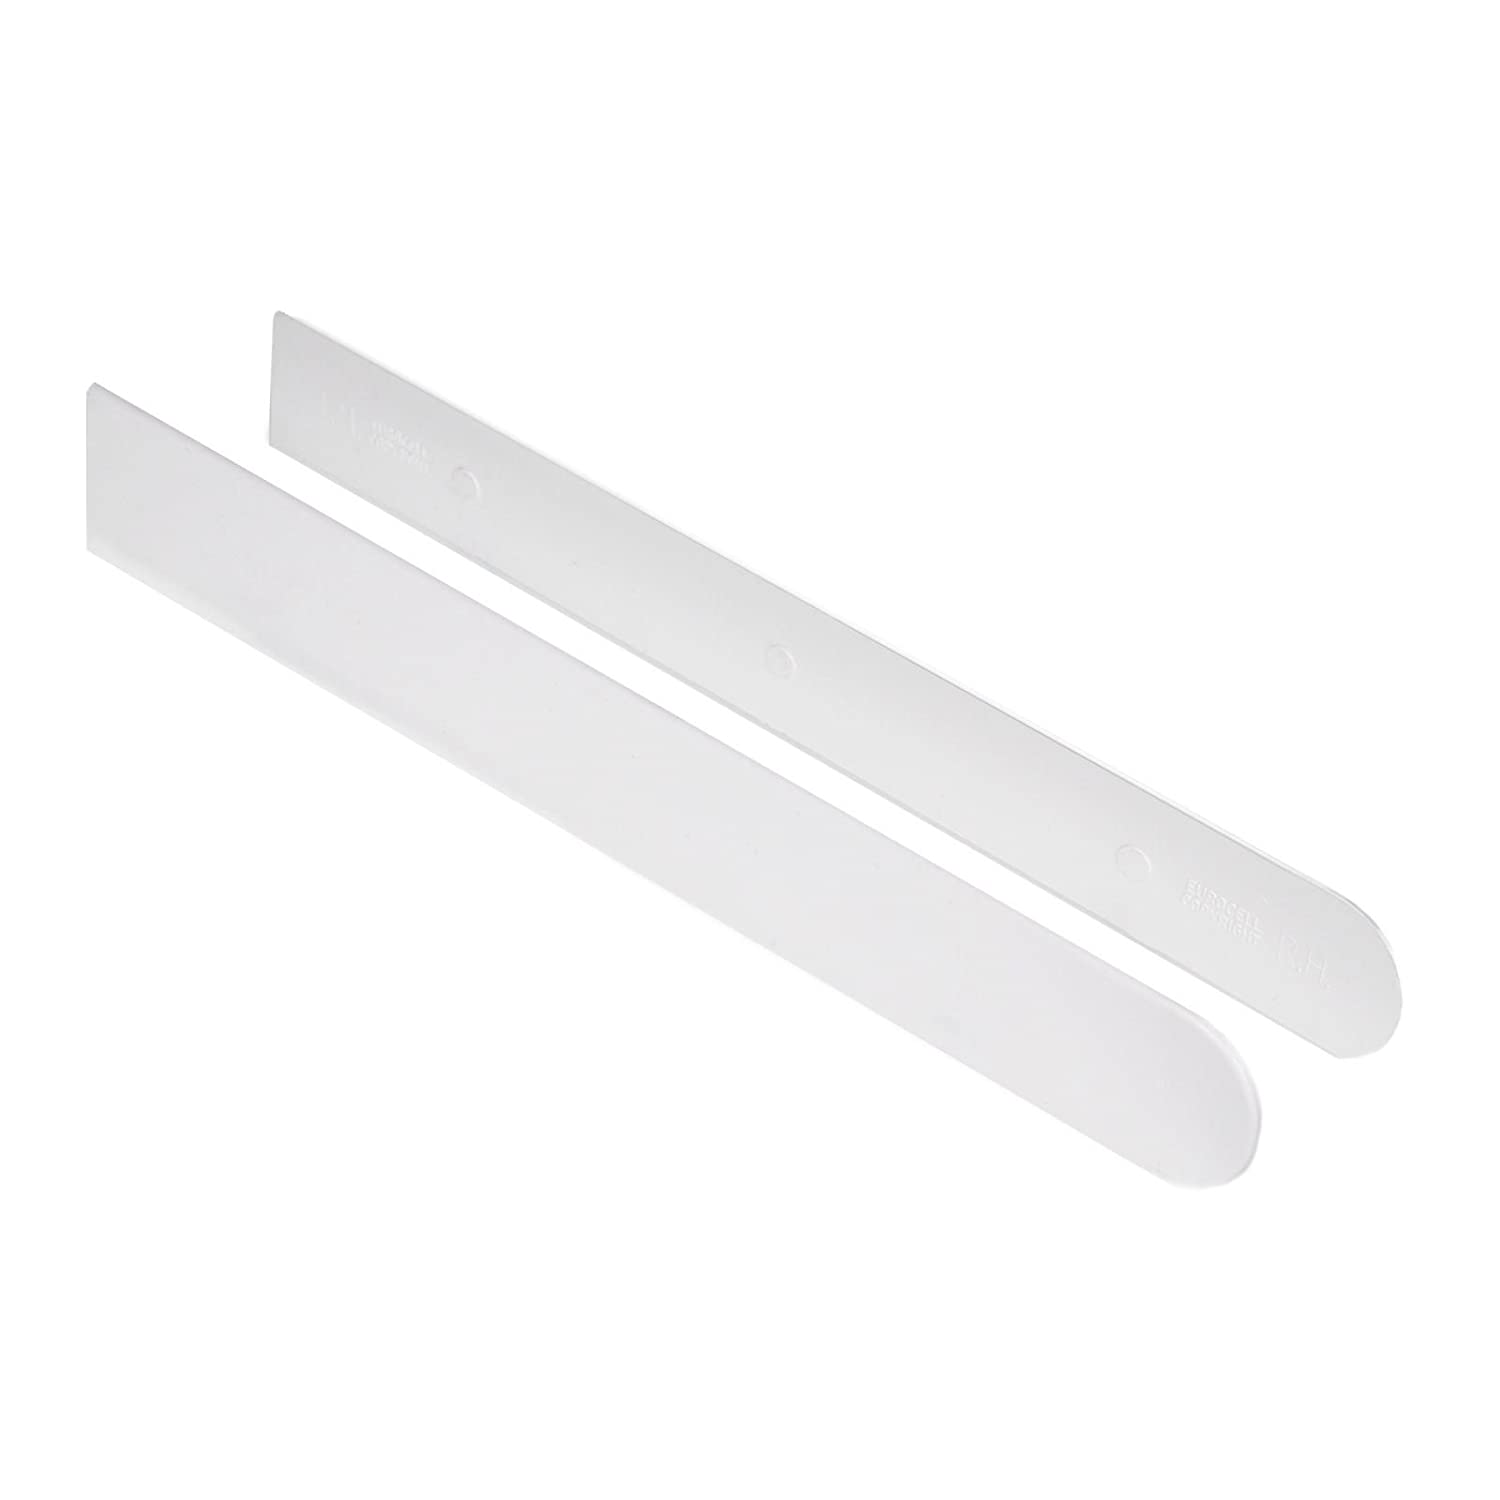 Pair White Long Window Cill Capping End Caps